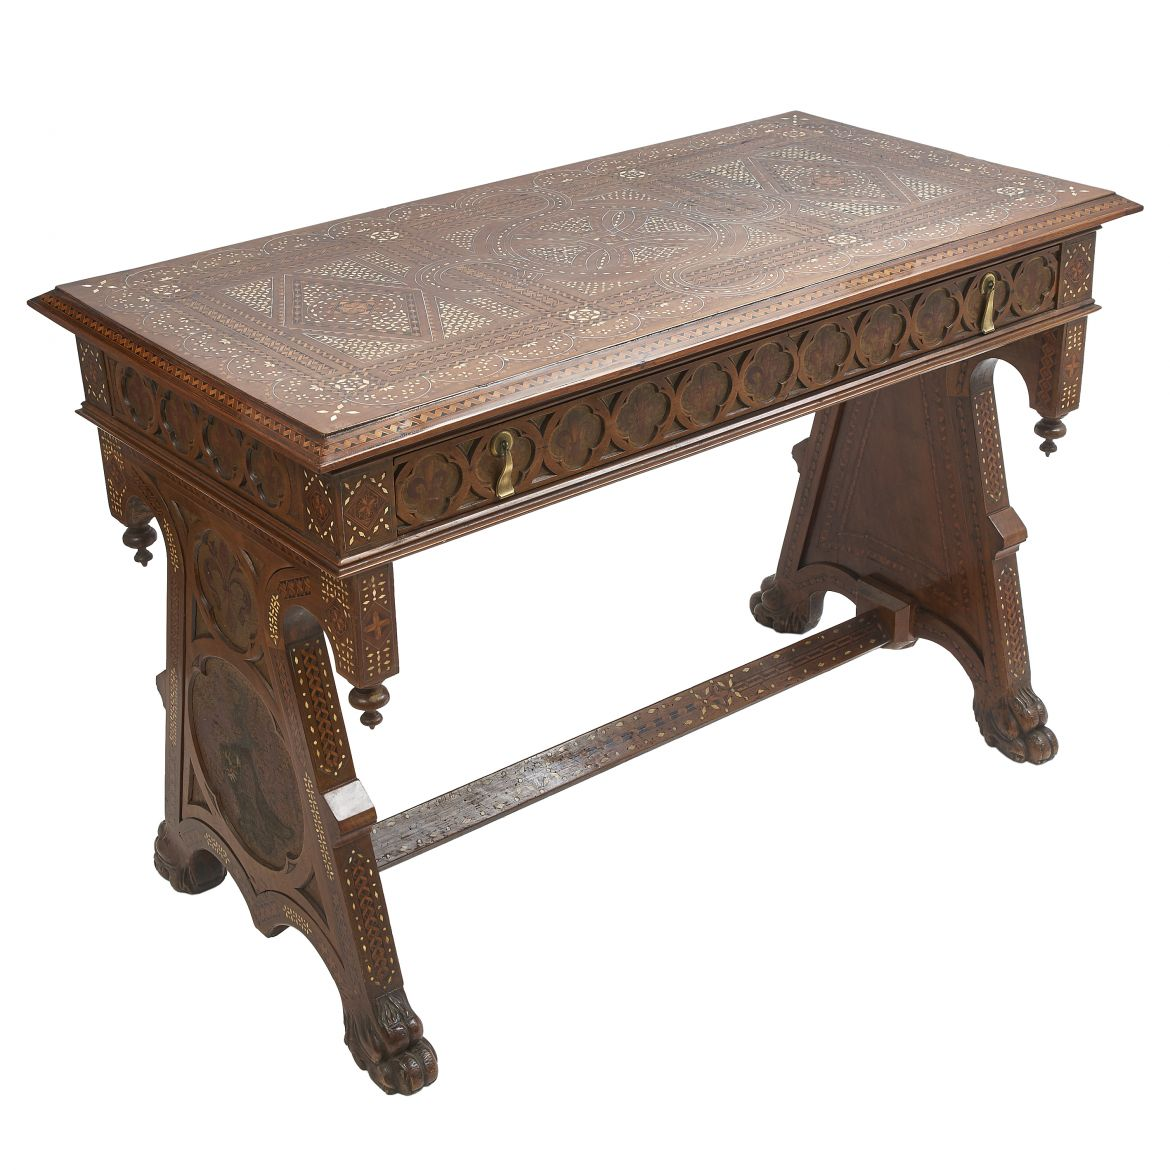 Florentine Inlaid Walnut Table